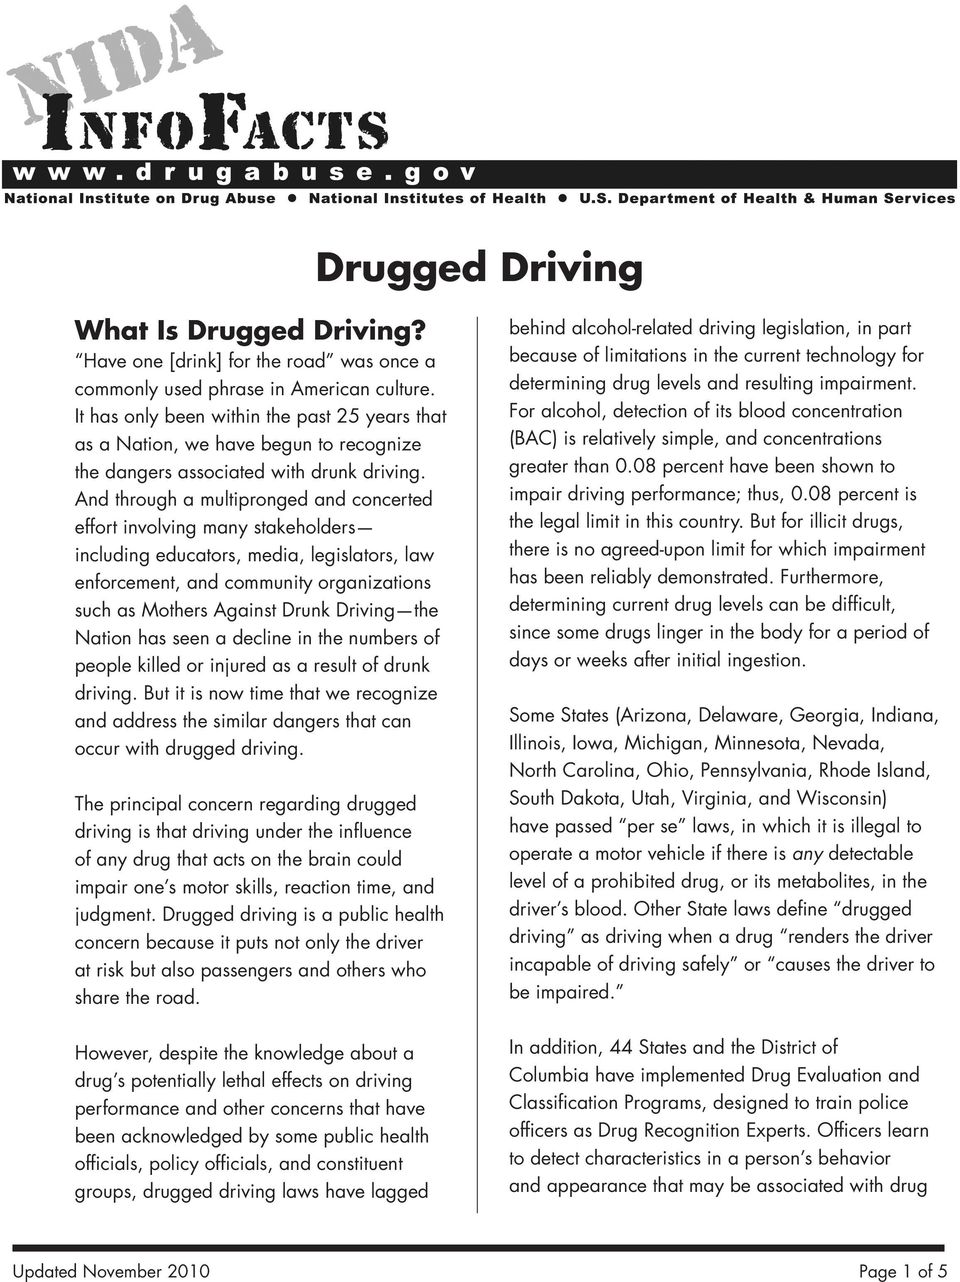 And through a multipronged and concerted effort involving many stakeholders including educators, media, legislators, law enforcement, and community organizations such as Mothers Against Drunk Driving